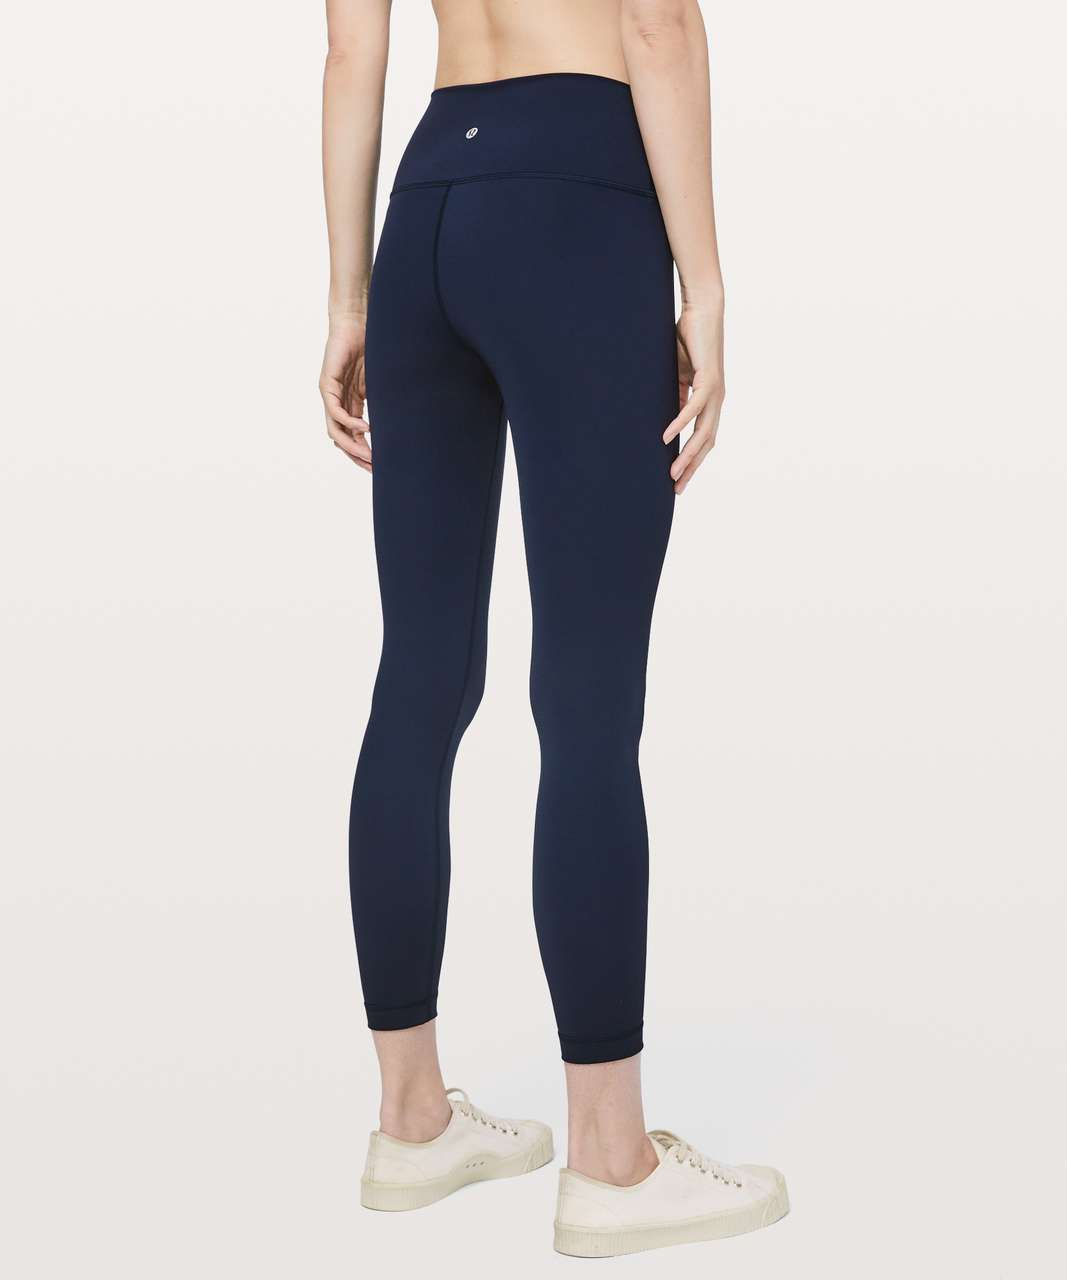 "Lululemon Wunder Under High-Rise 7/8 Tight *Full-On Luxtreme 25"" - True Navy"